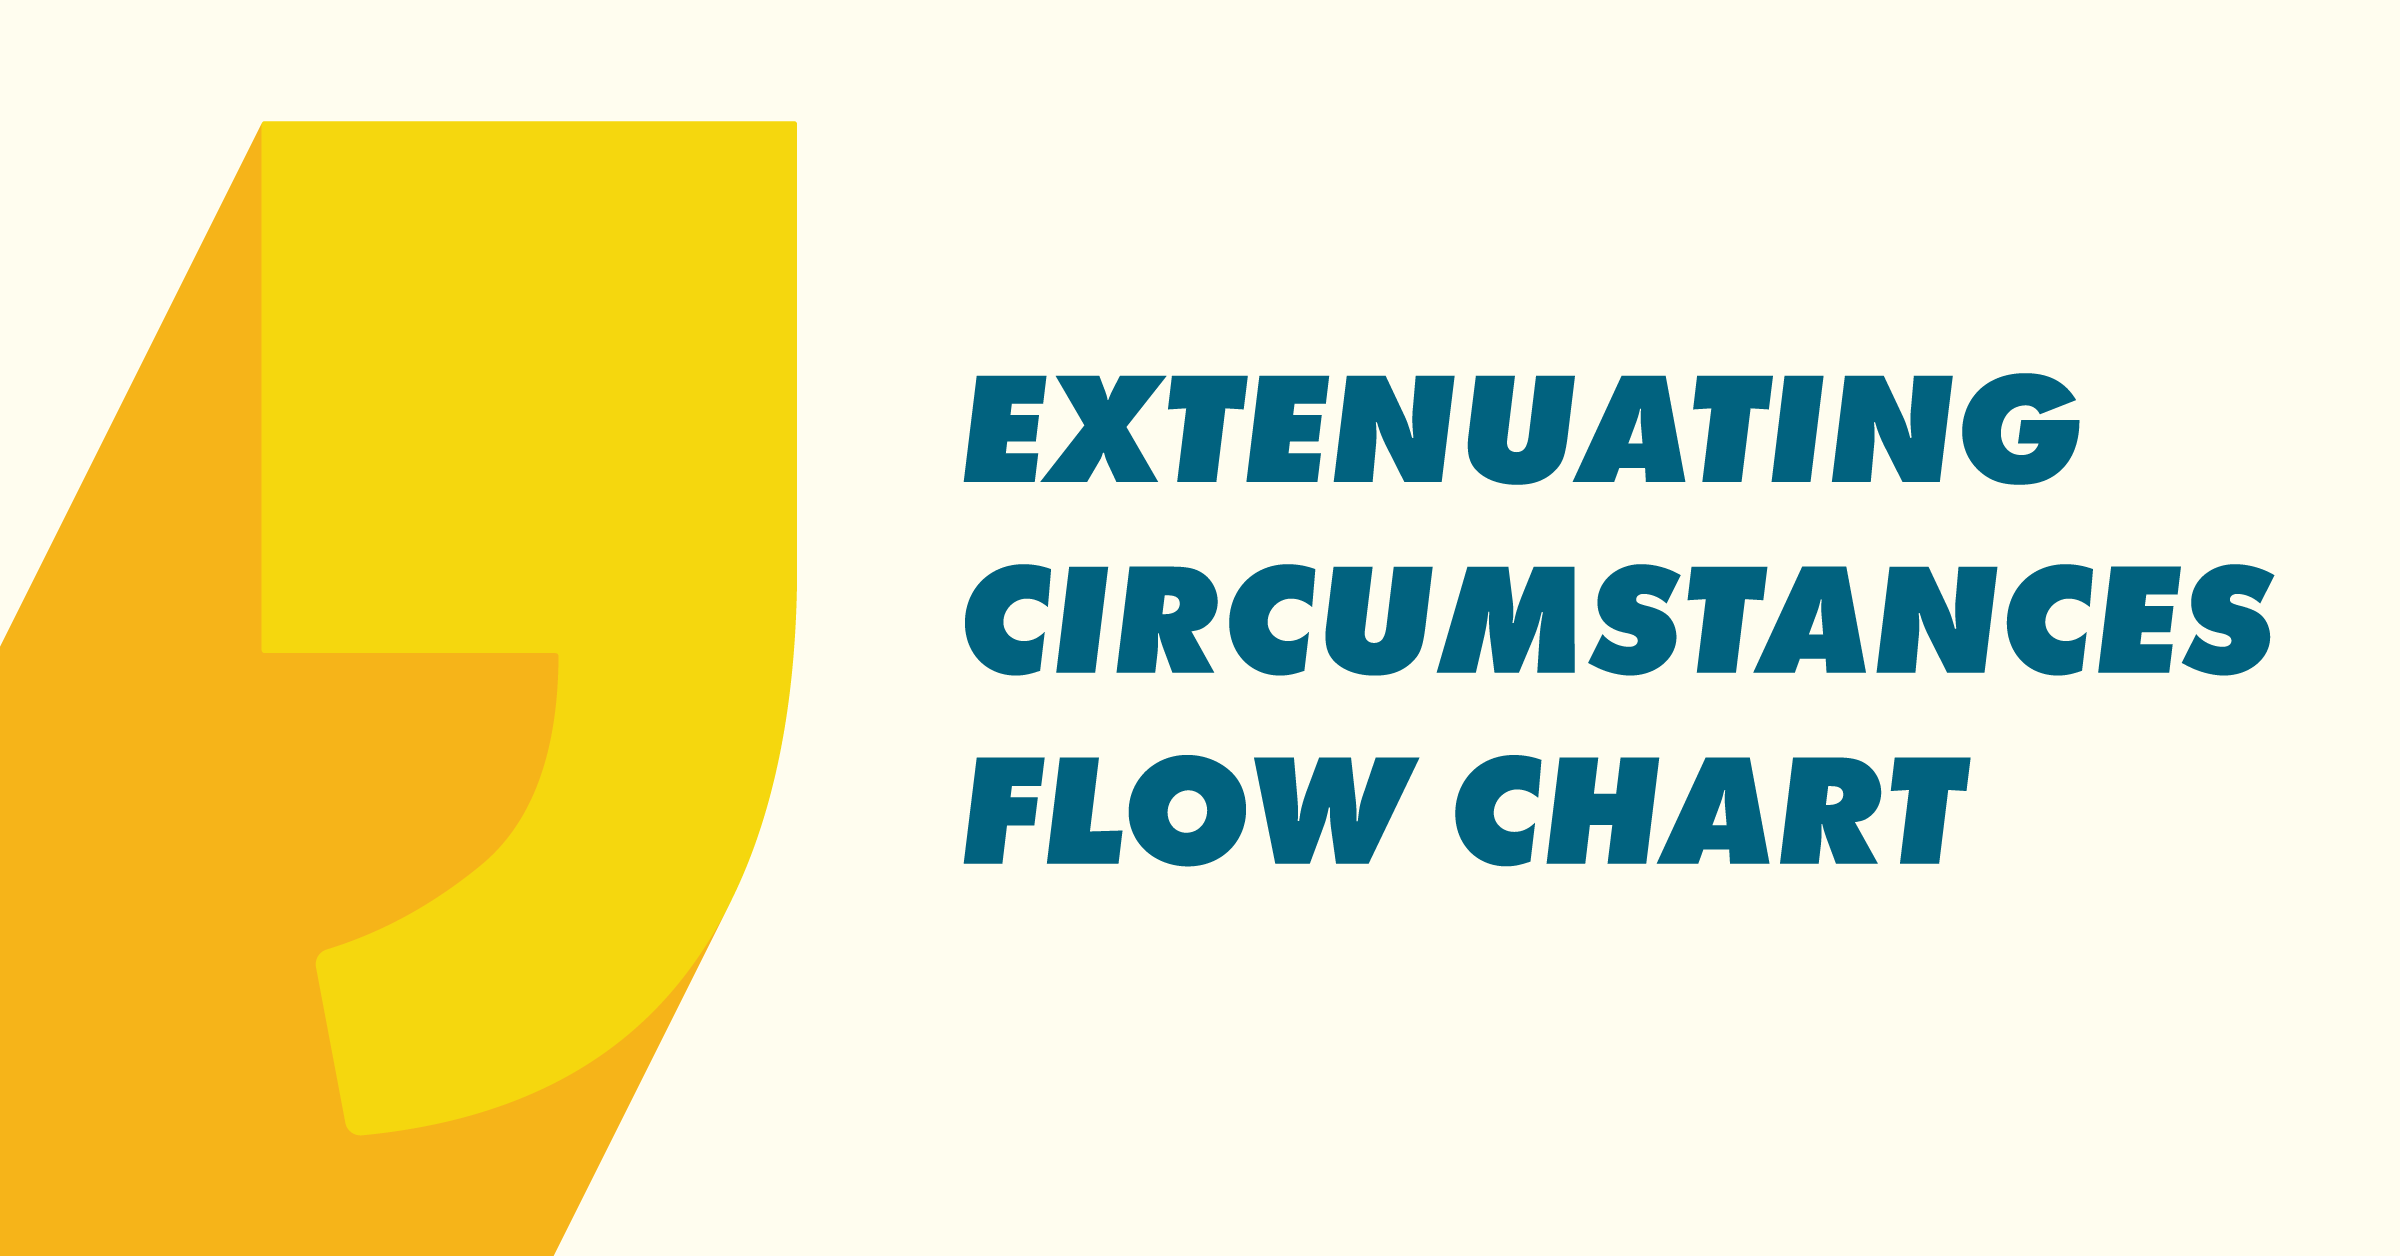 Extenuating Circumstances Flow Chart